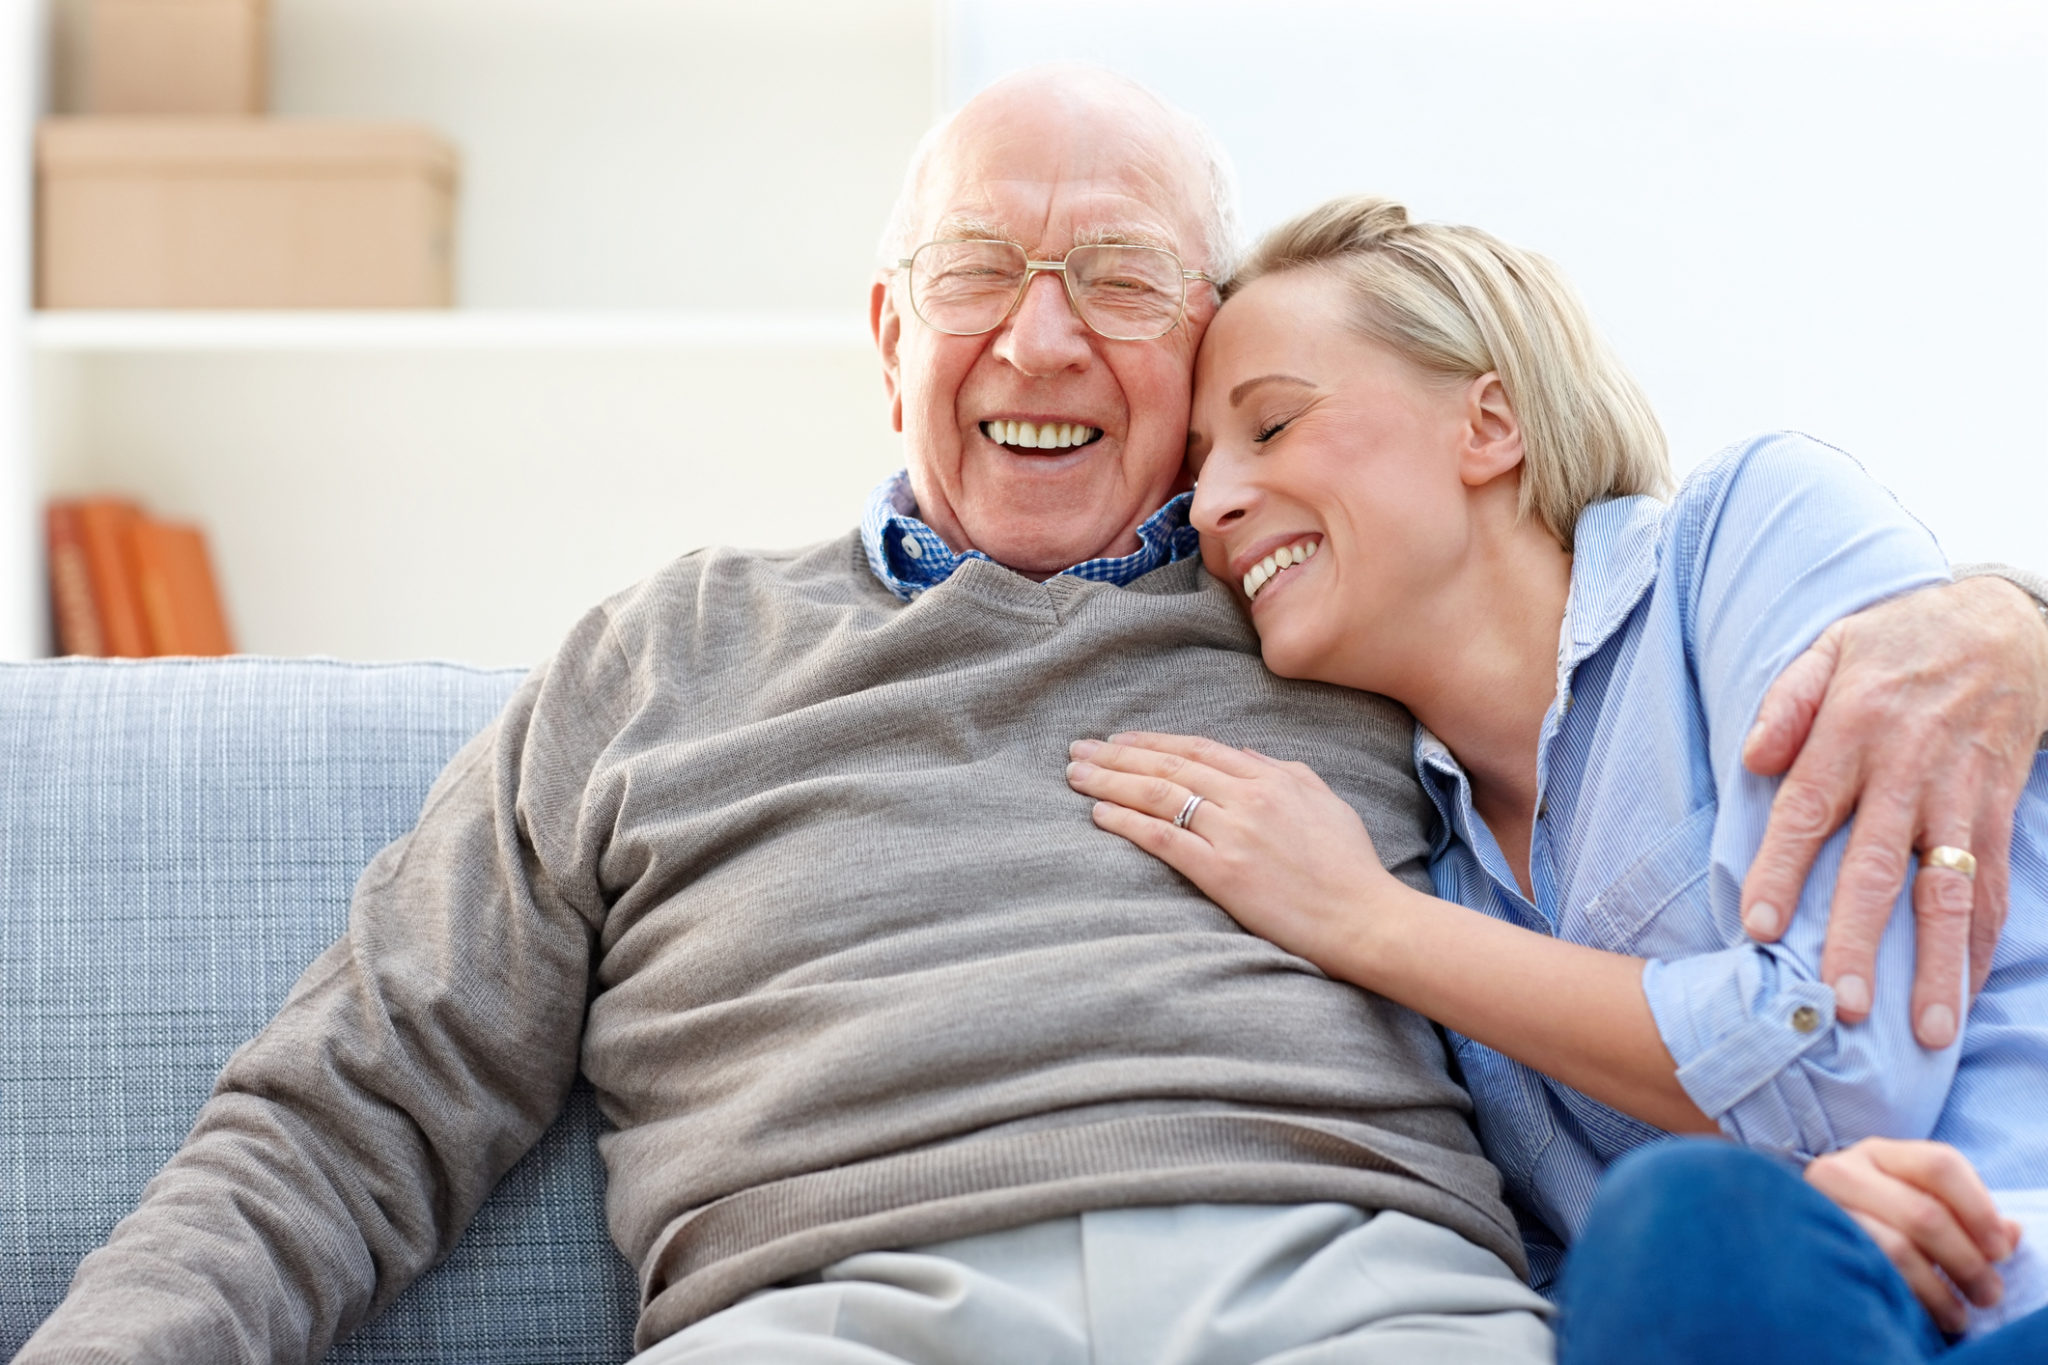 Best Ways to Provide Older Relatives a Sense of Purpose and Senior Independence